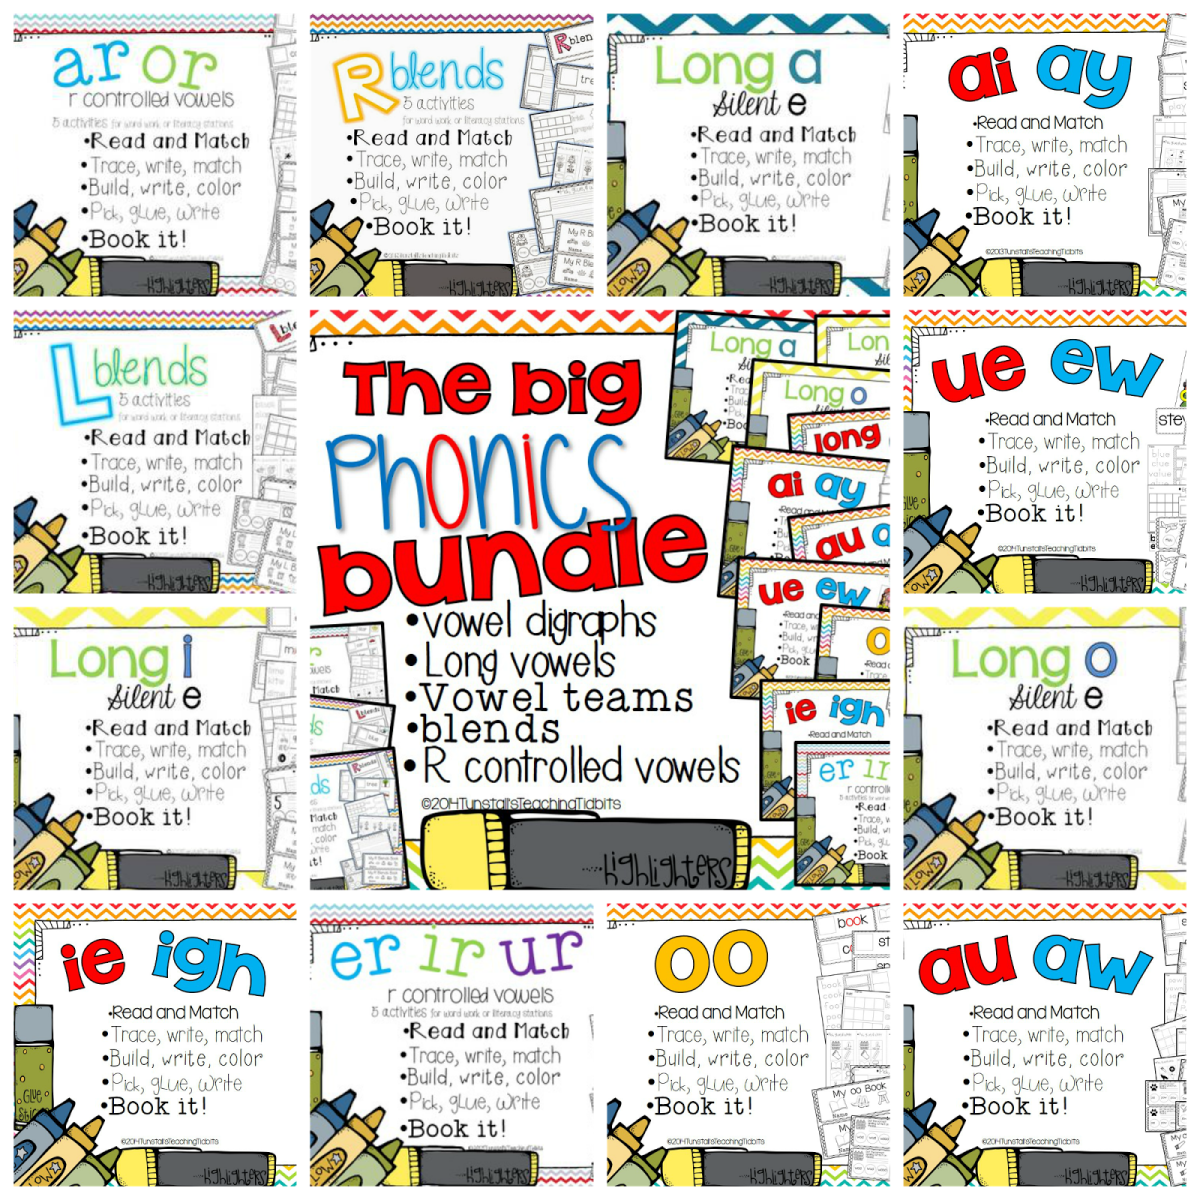 http://www.teacherspayteachers.com/Product/aw-au-5-Interactive-phonics-activities-1132161